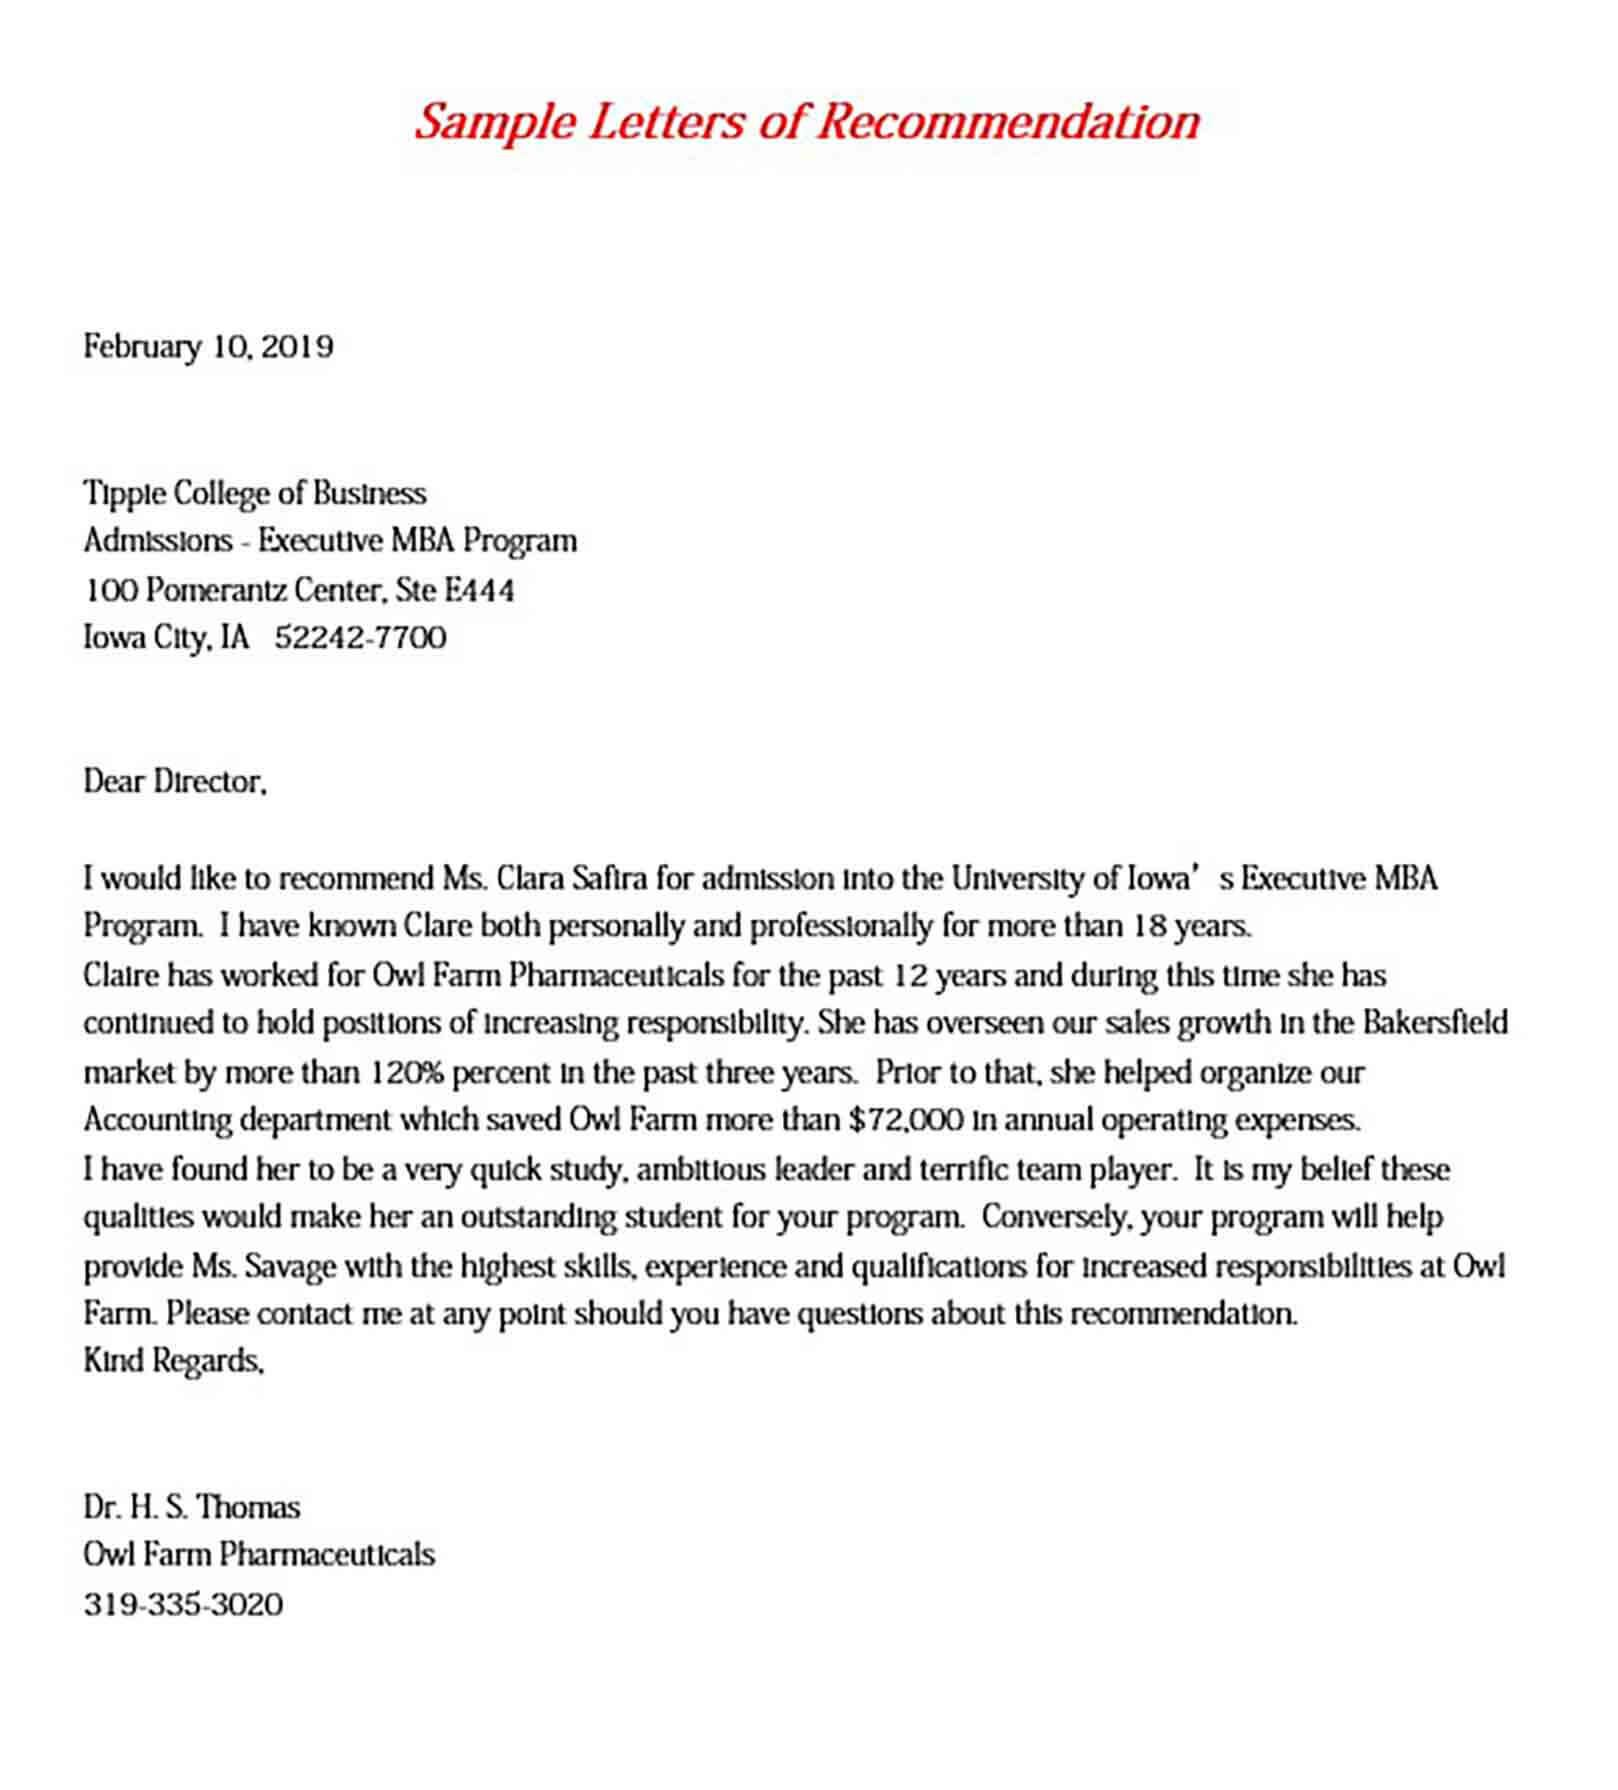 008 Incredible College Letter Of Recommendation Template Image  Writing Scholarship From EmployerFull